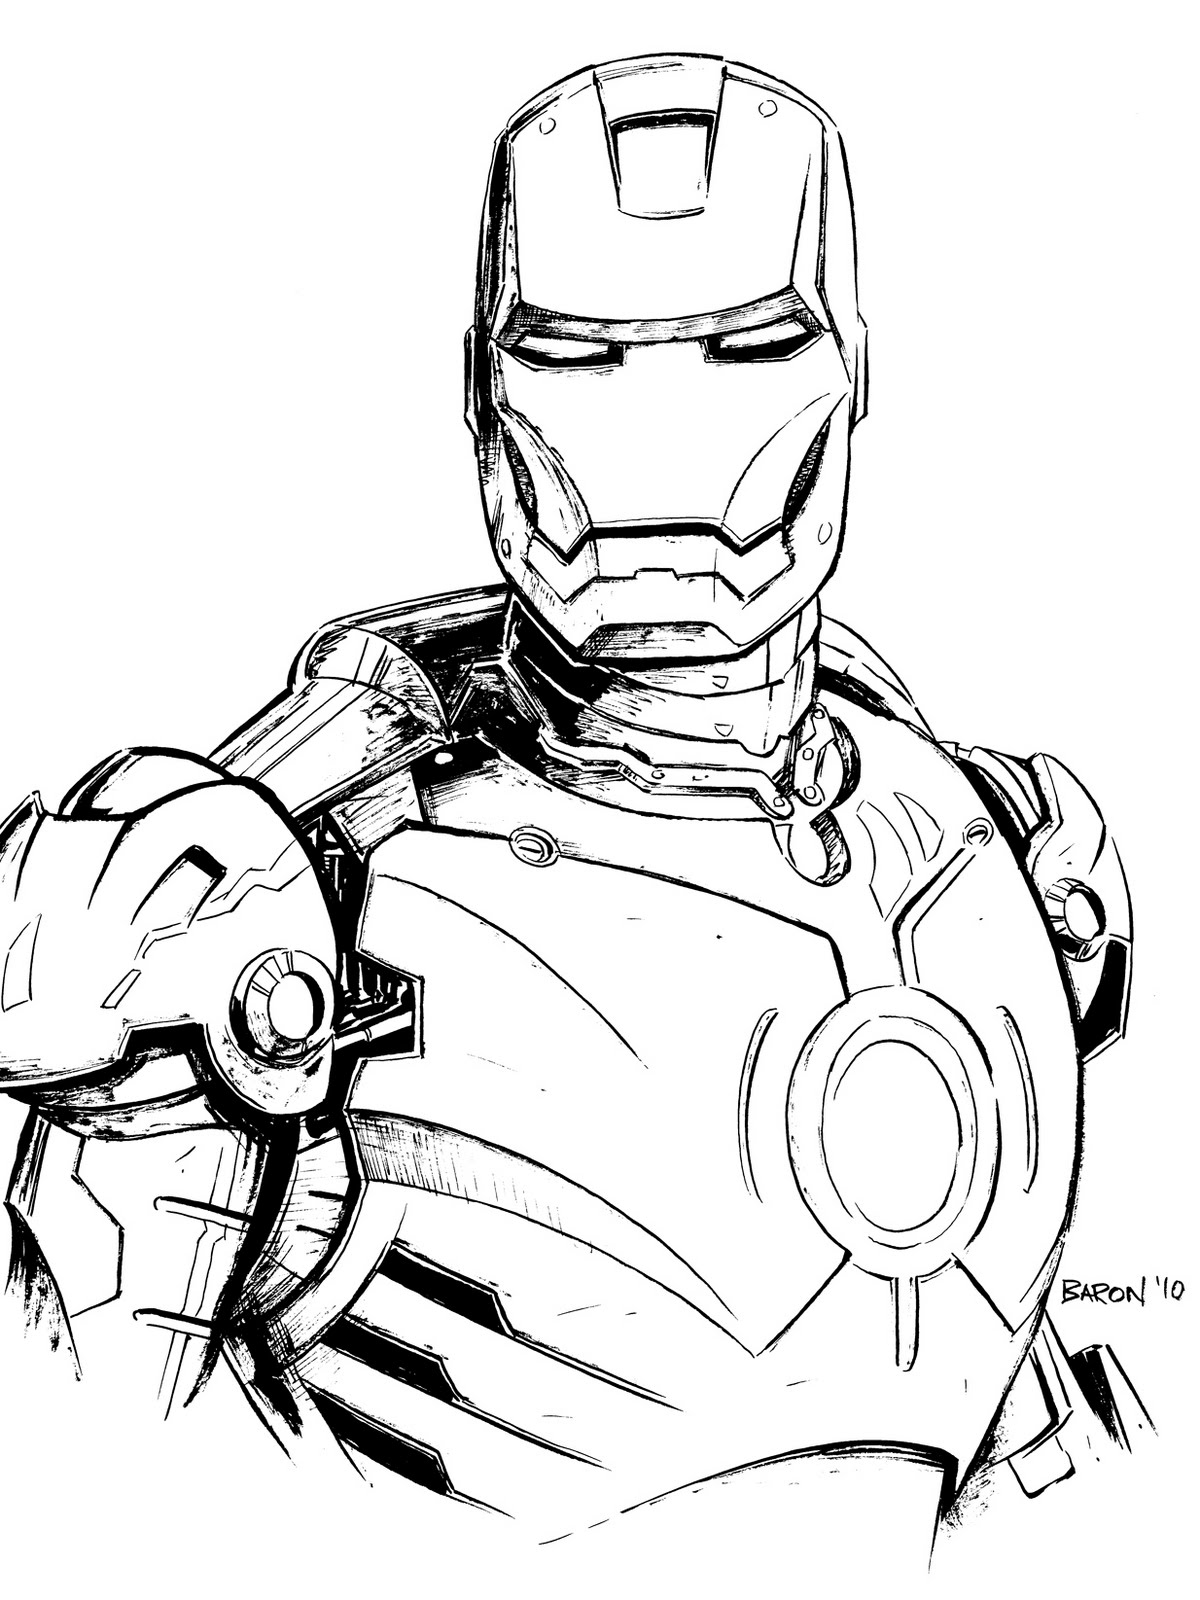 iron coloring page marvel superhero iron man 3 with burning hands colouring coloring page iron